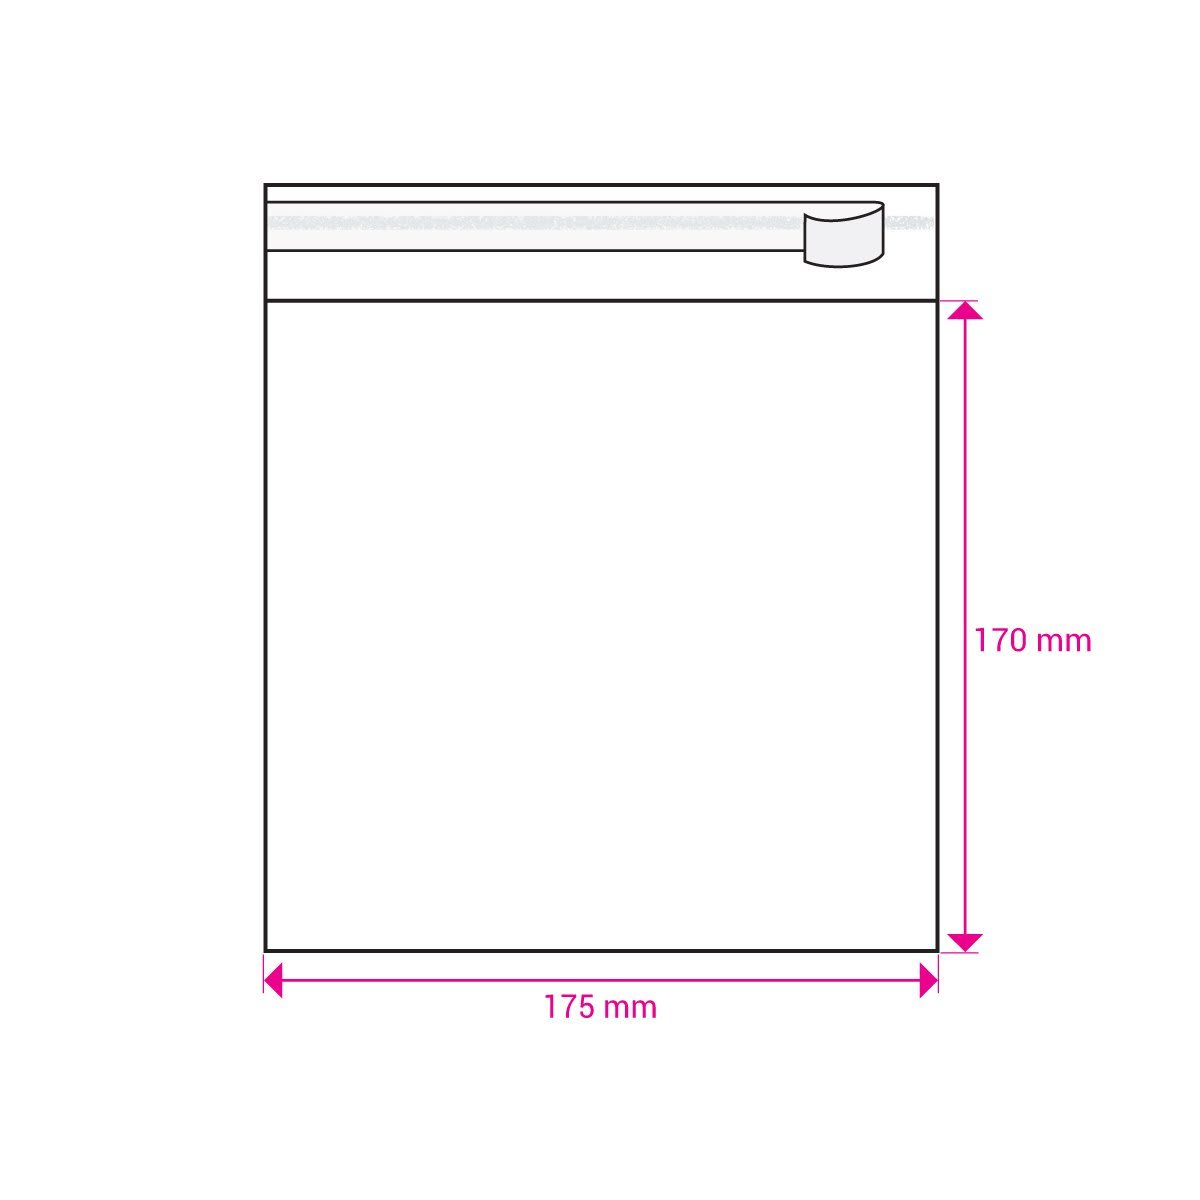 CLEAR CELLO BAGS to fit: 170 mm Square (SELF ADHESIVE)